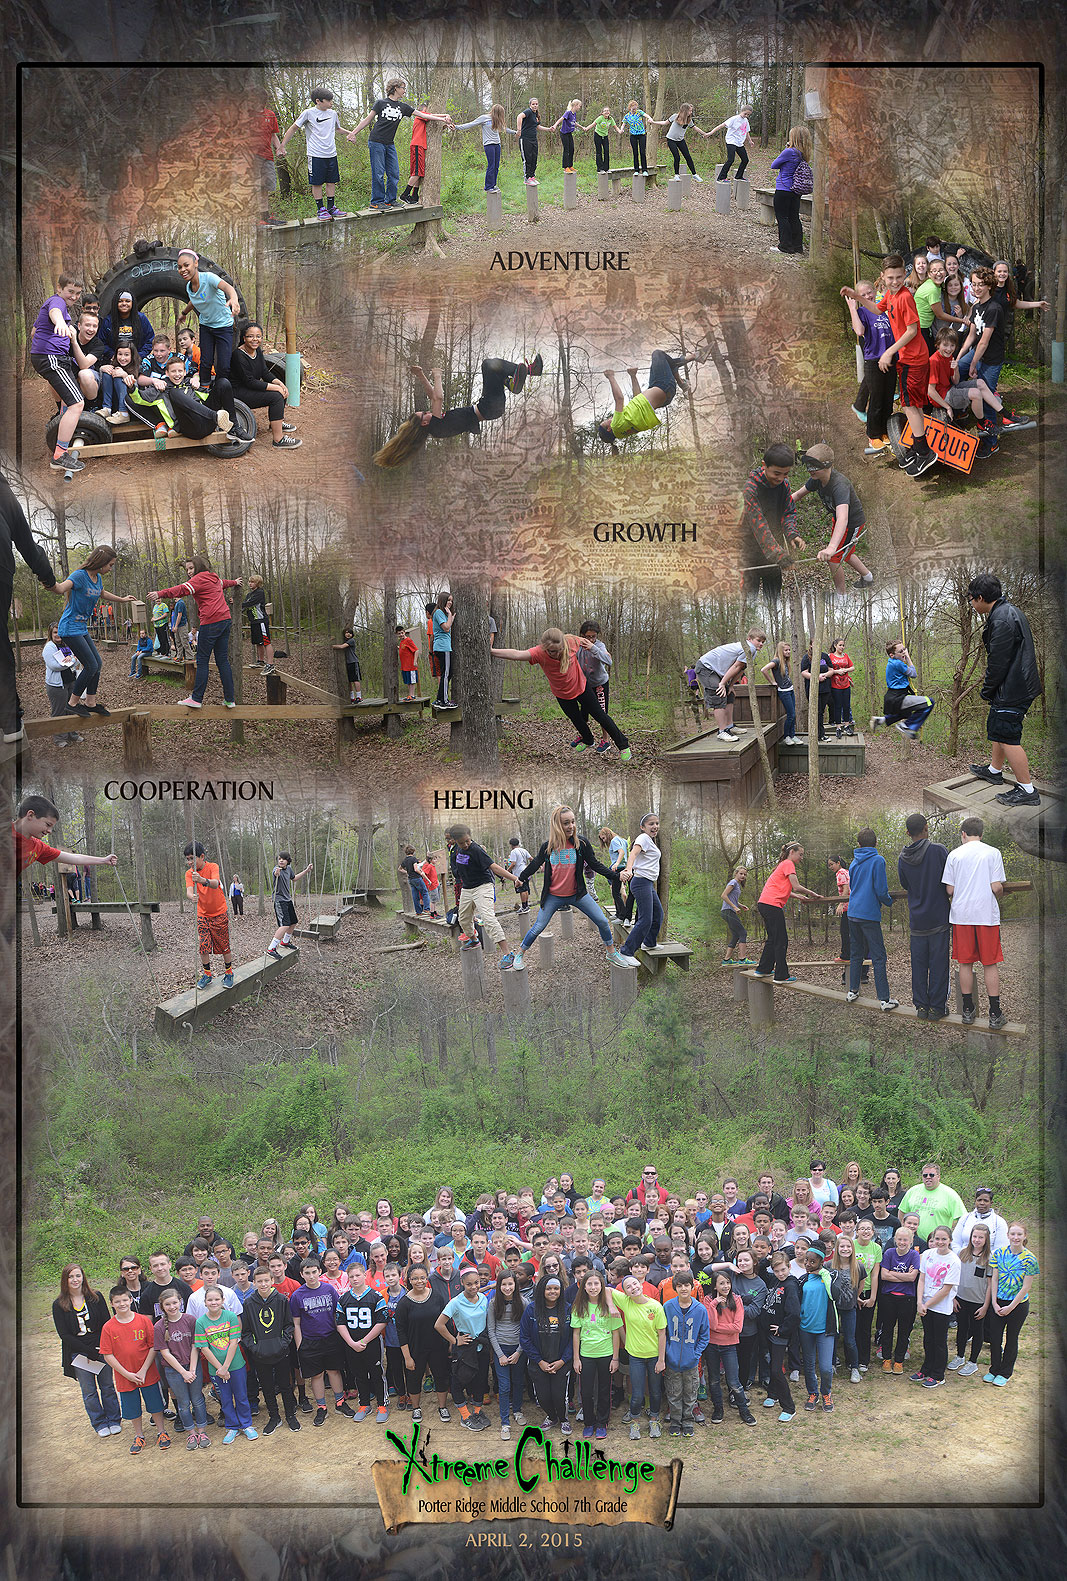 Porter Ridge Middle School April 2015 Experiential Learning at Xtreeme Challenge in Monroe North Carolina